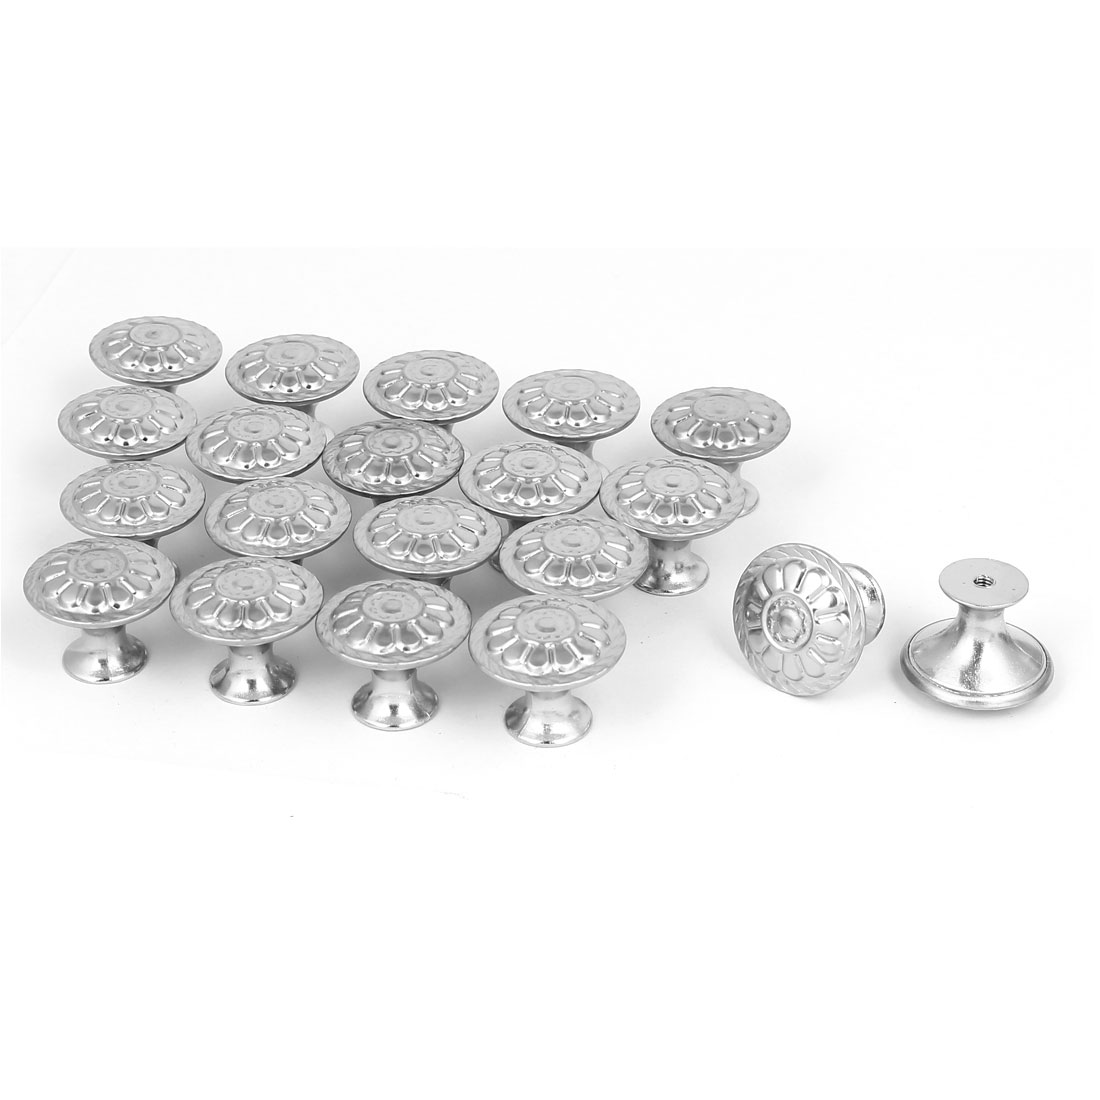 Wardrobe Drawer Single Hole Flower Printed Pull Knobs Grips 27.5mmx21.5mm 20pcs